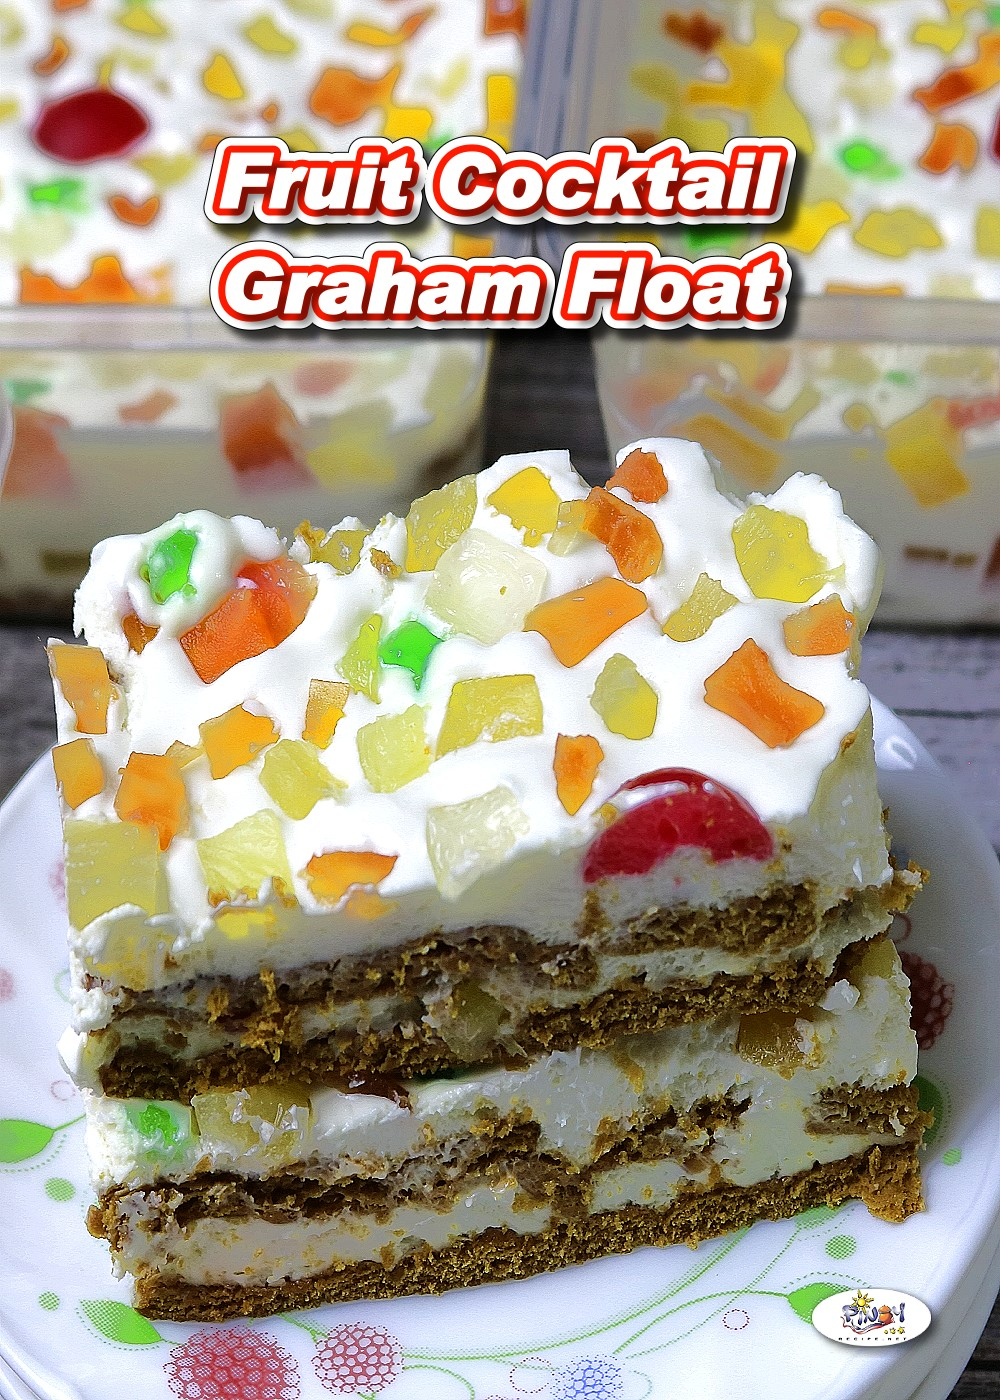 Fruit Cocktail Graham Float Recipe